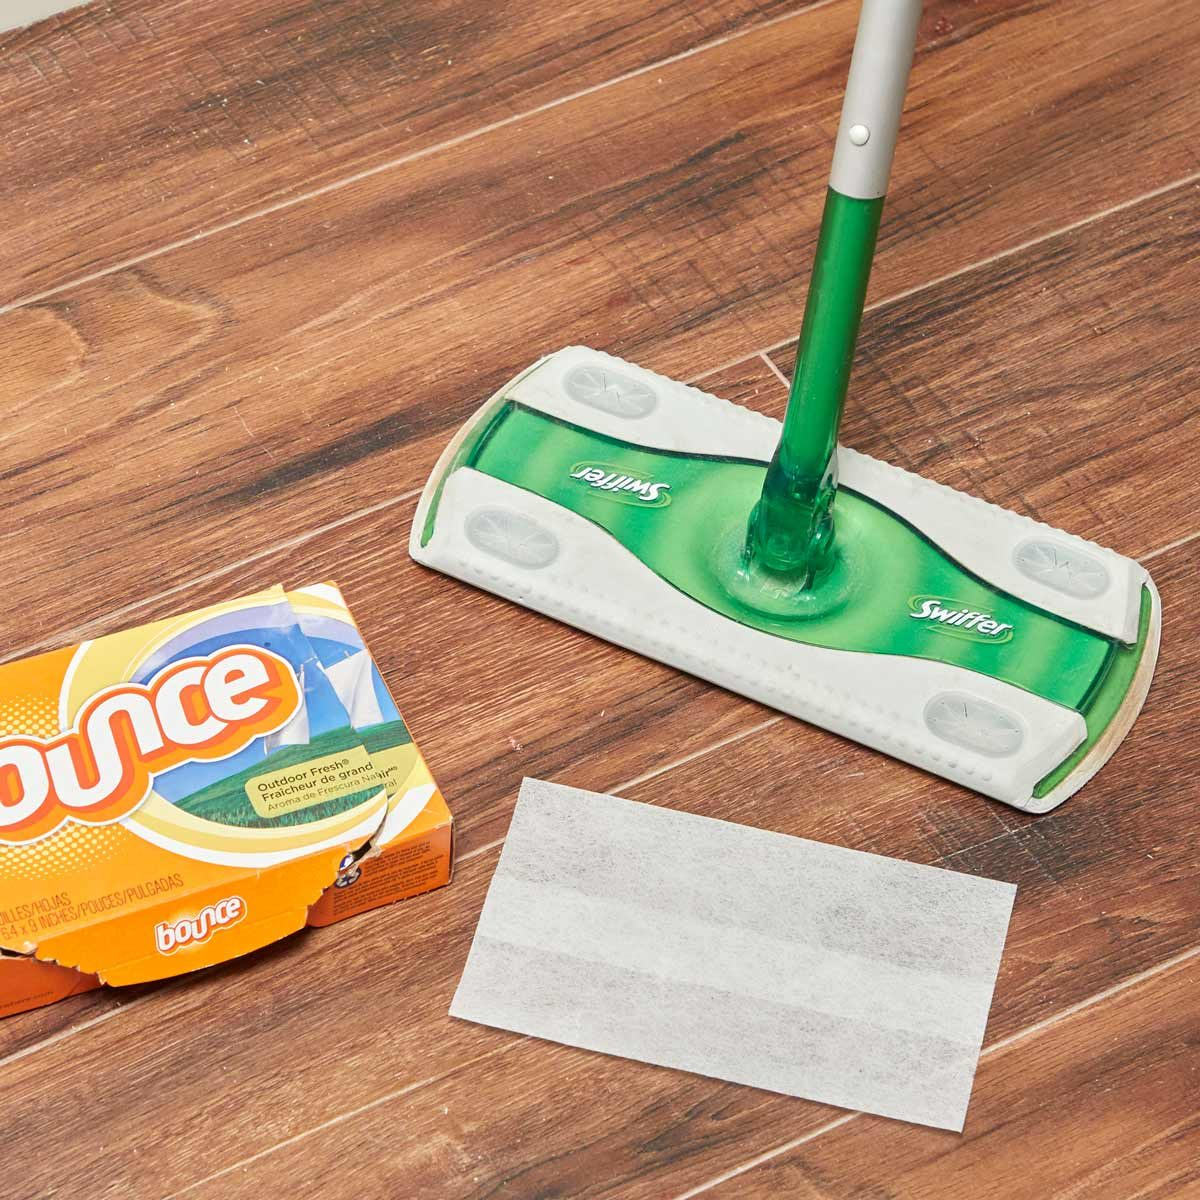 HH Handy hint swiffer floor sweeper dryer sheets